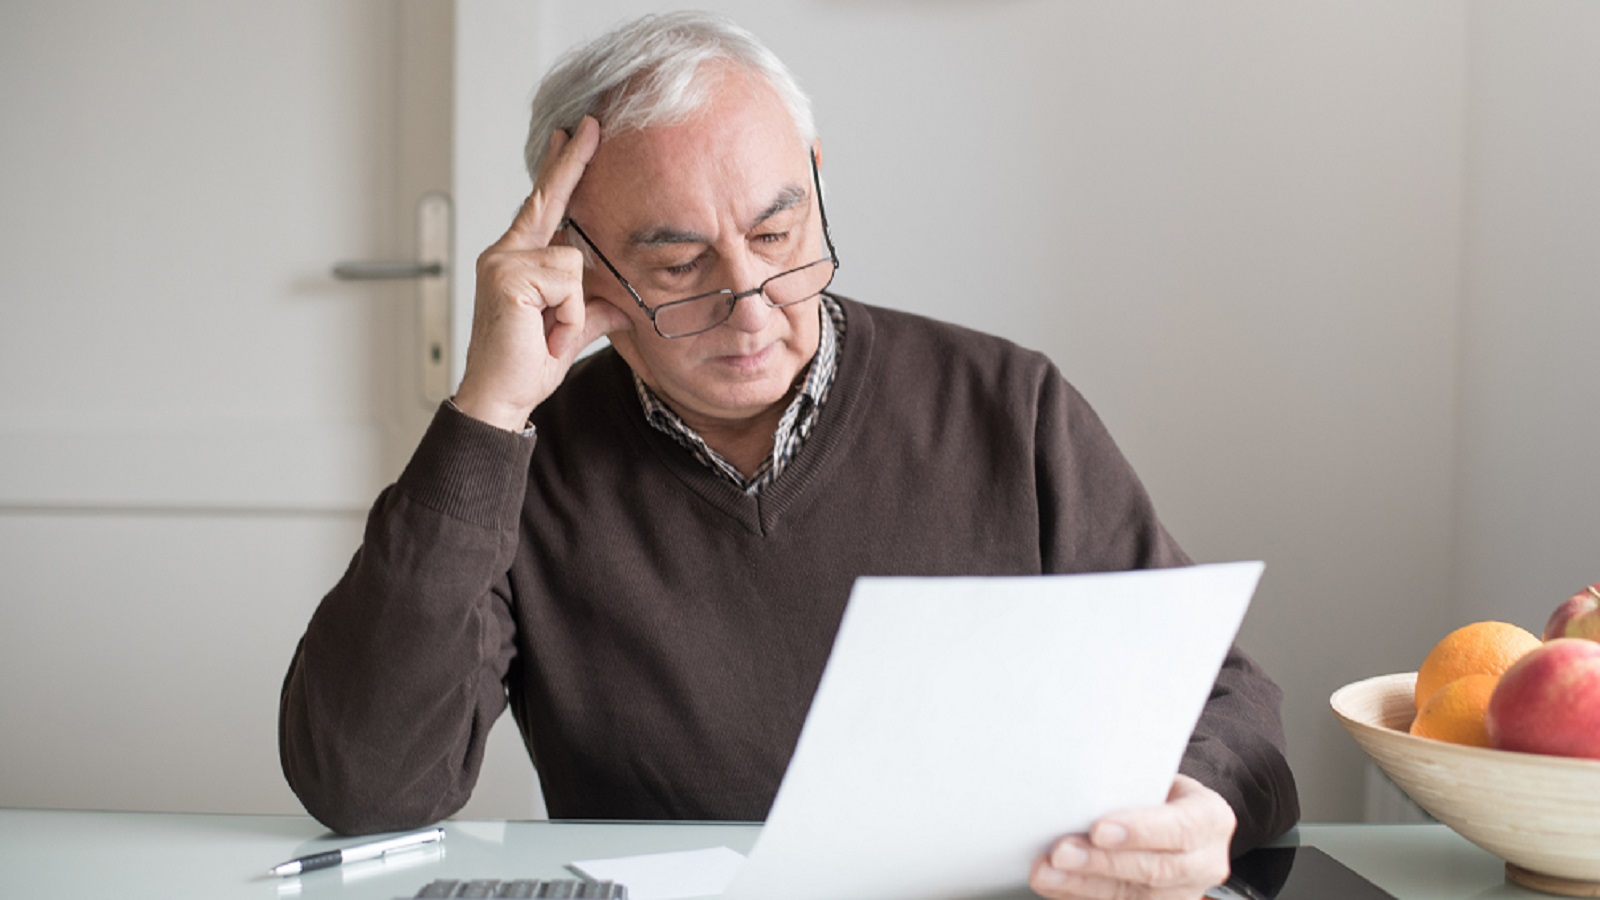 Elderly Man Reviewing His Finances Alone Stock Photo